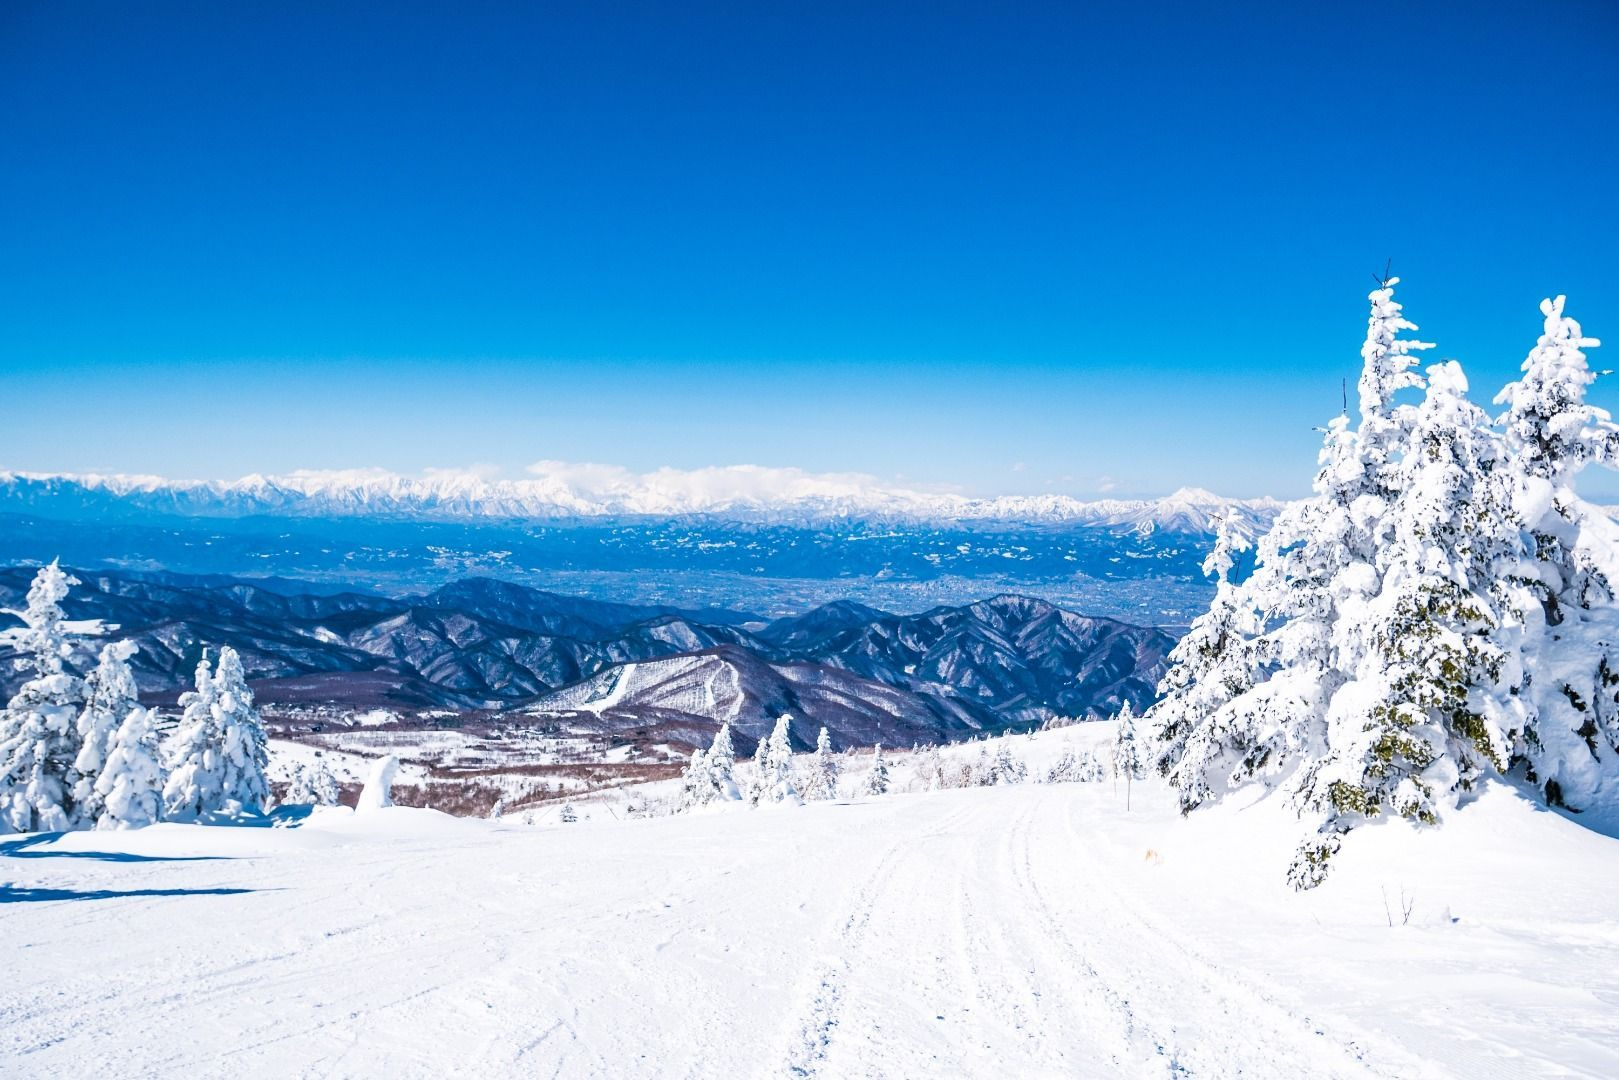 Suitable for Skiers of All Level- Nagano, the Skiing Paradise